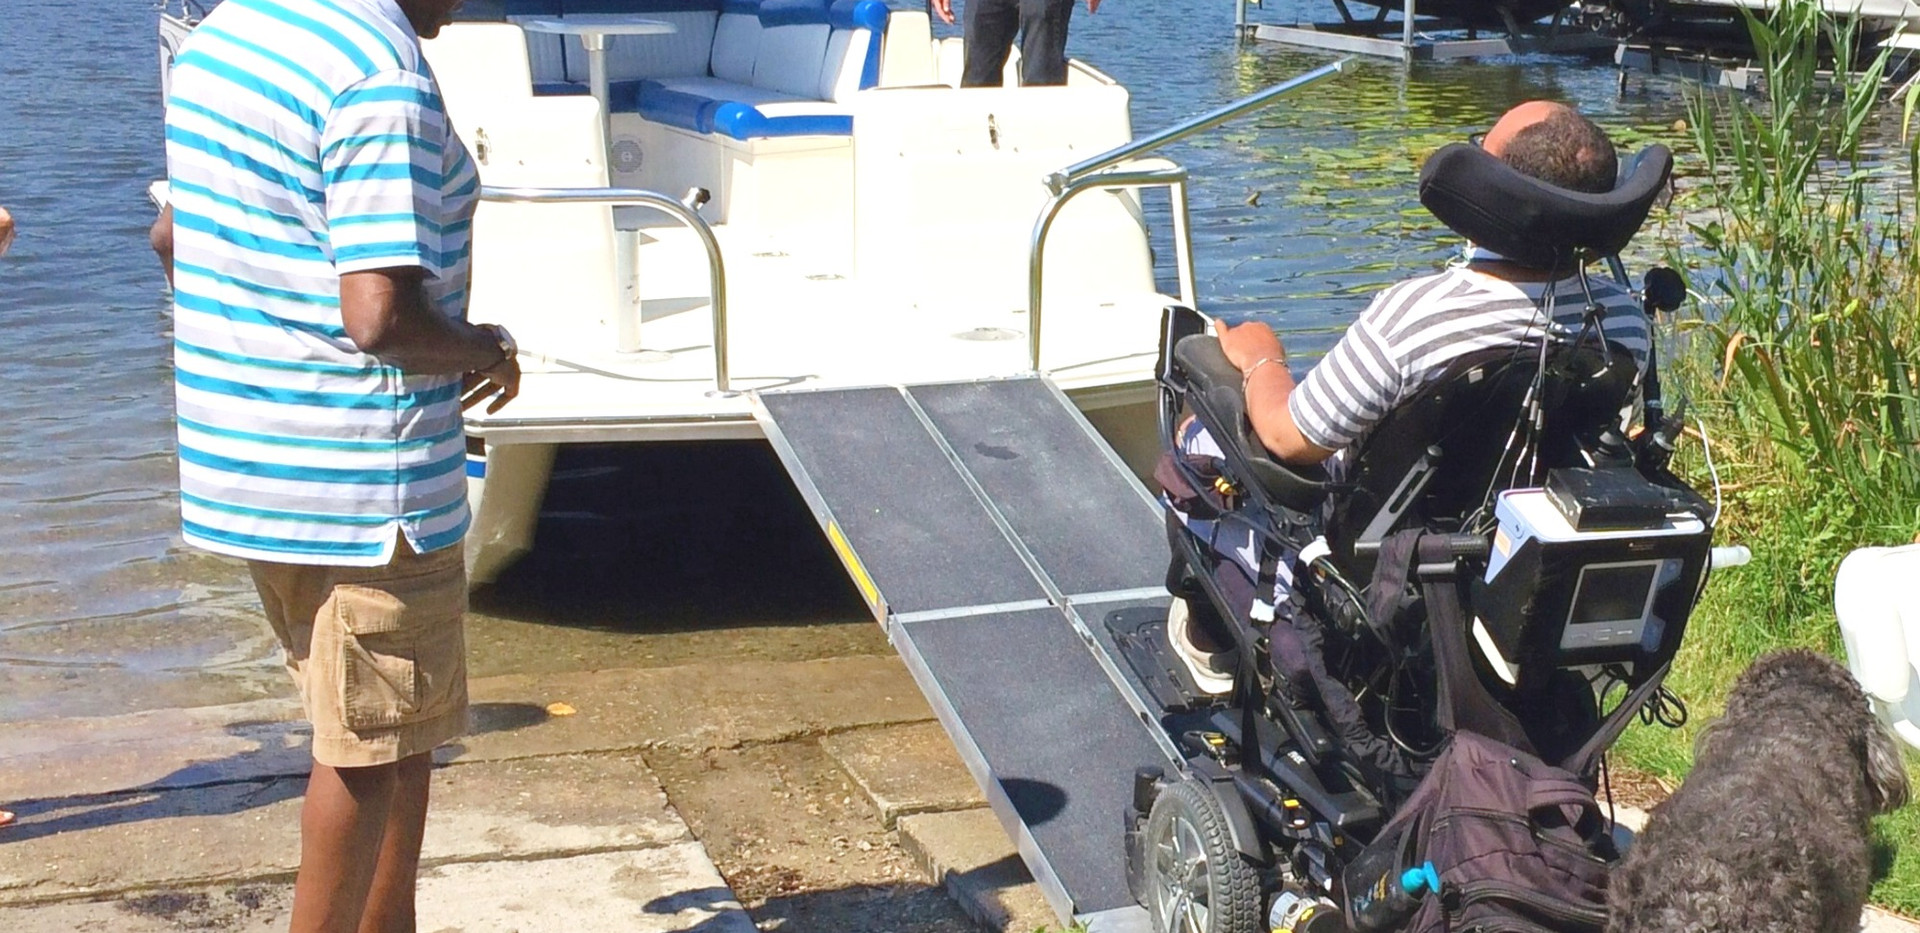 Going out for the day on a wheelchair accessible boat